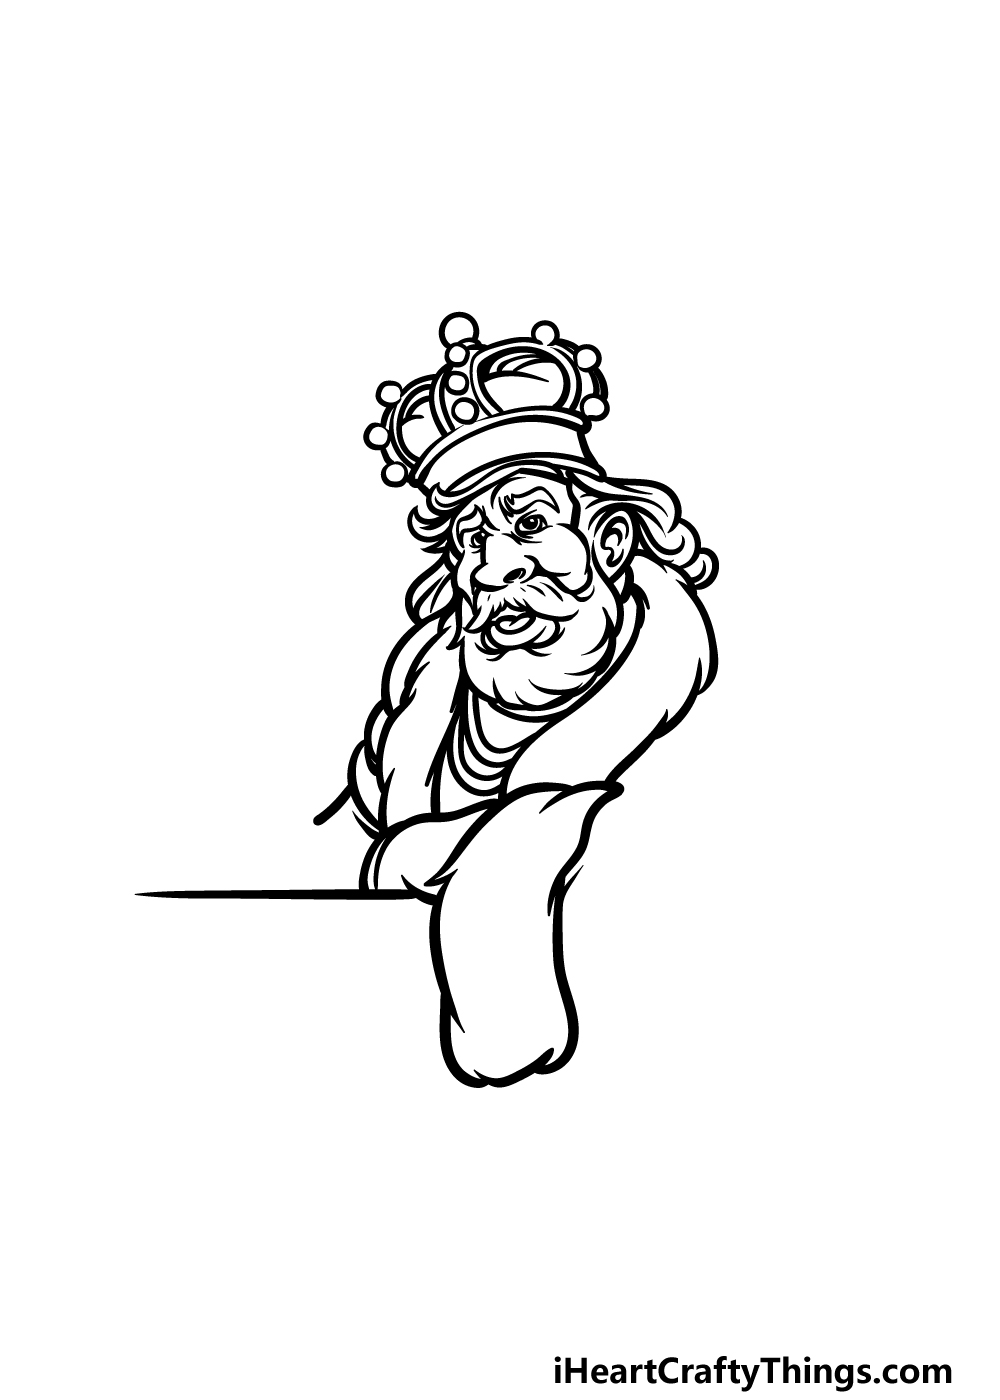 how to draw a King step 3